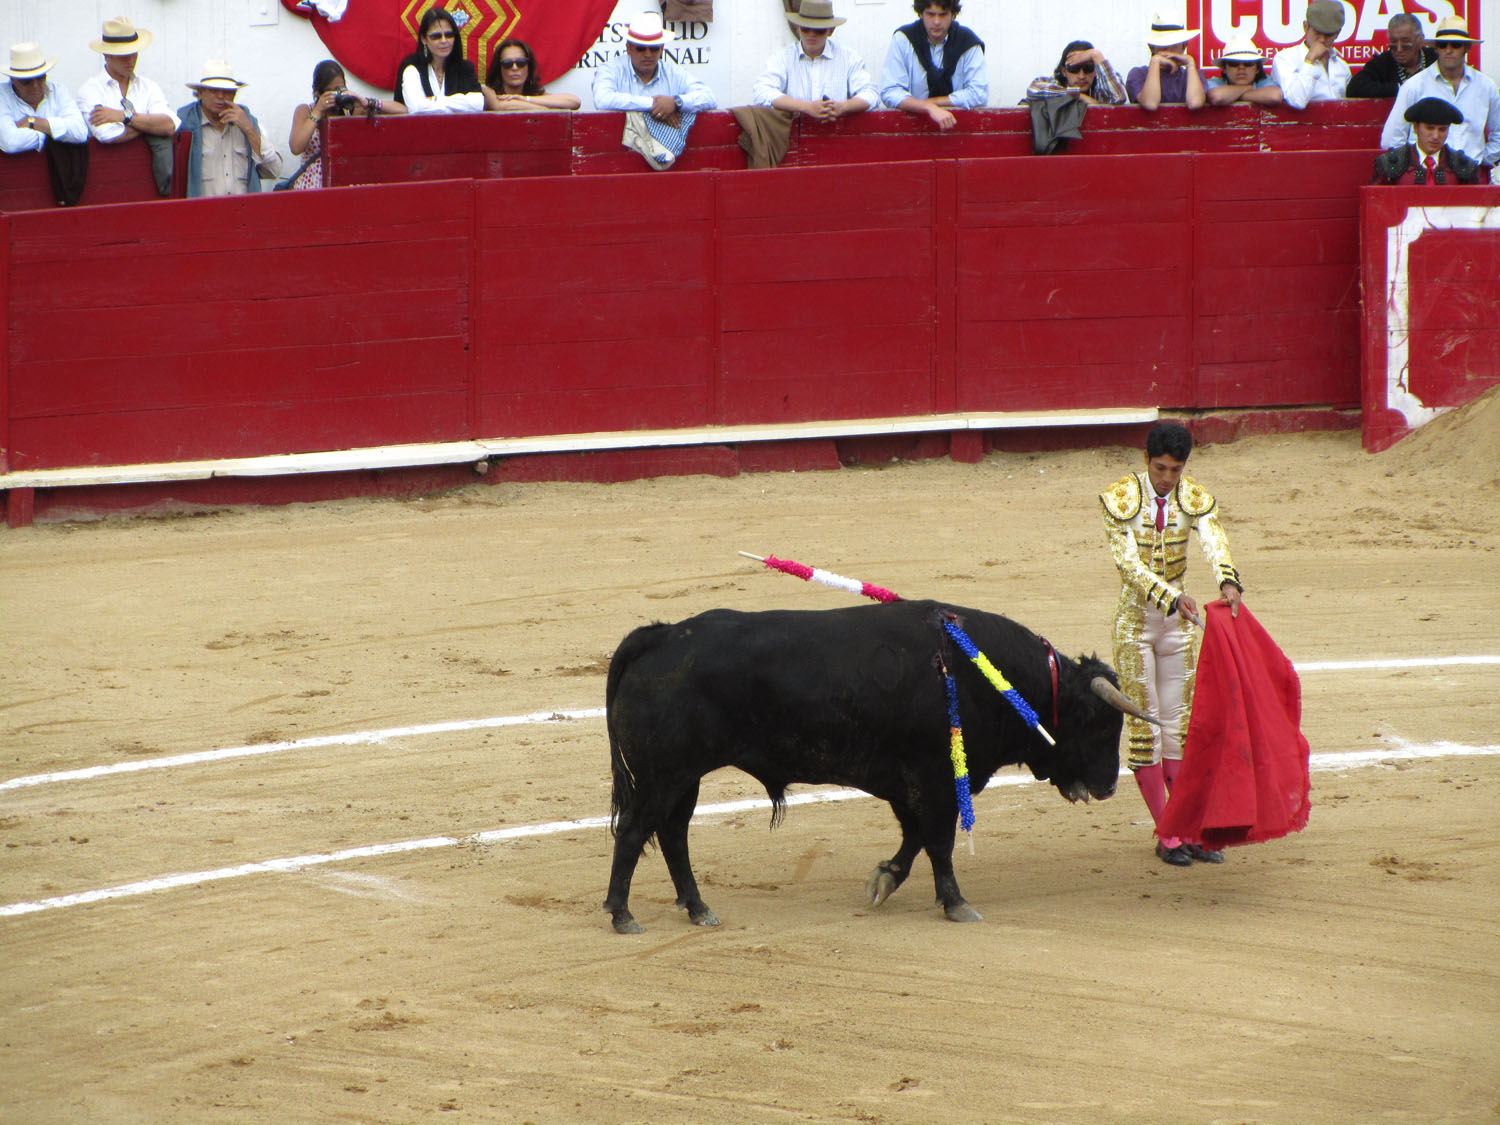 Ecuador-Quito-Bullfight-Coaxing-The-Bull